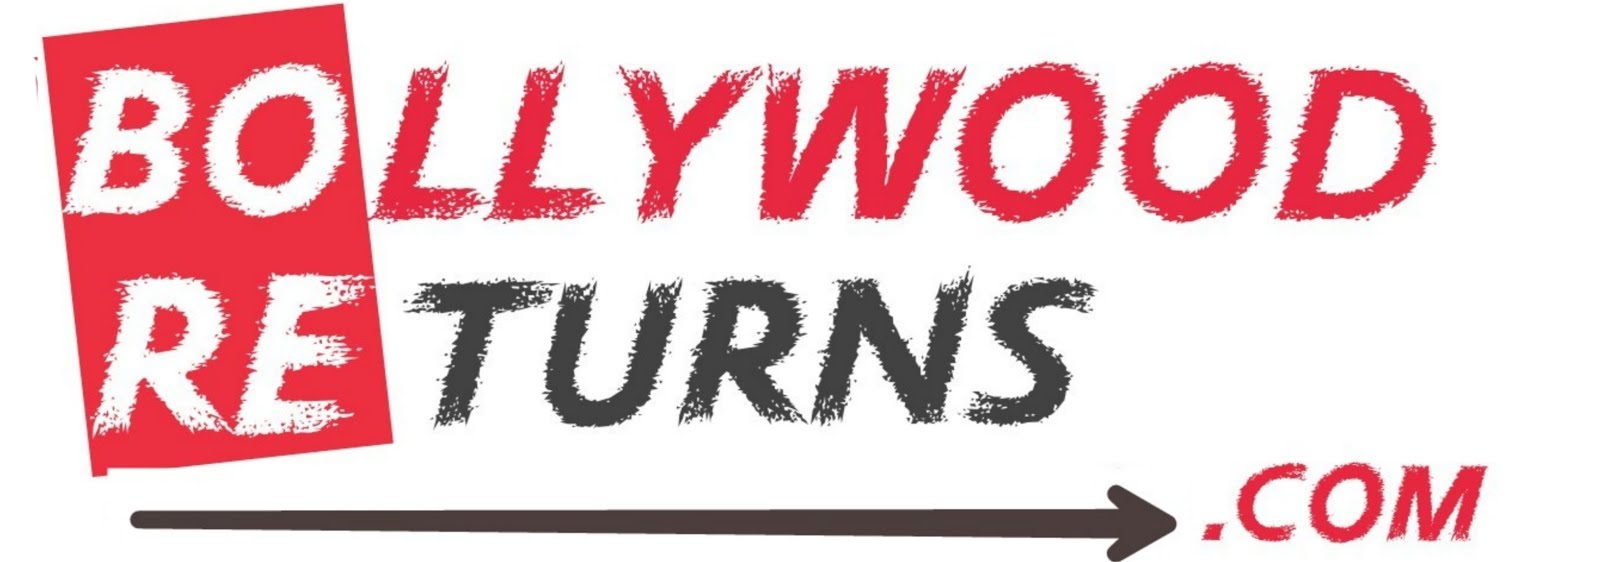 Bollywood Returns | Bollywood News & Gossips,Box Office Collection, Movie Reviews